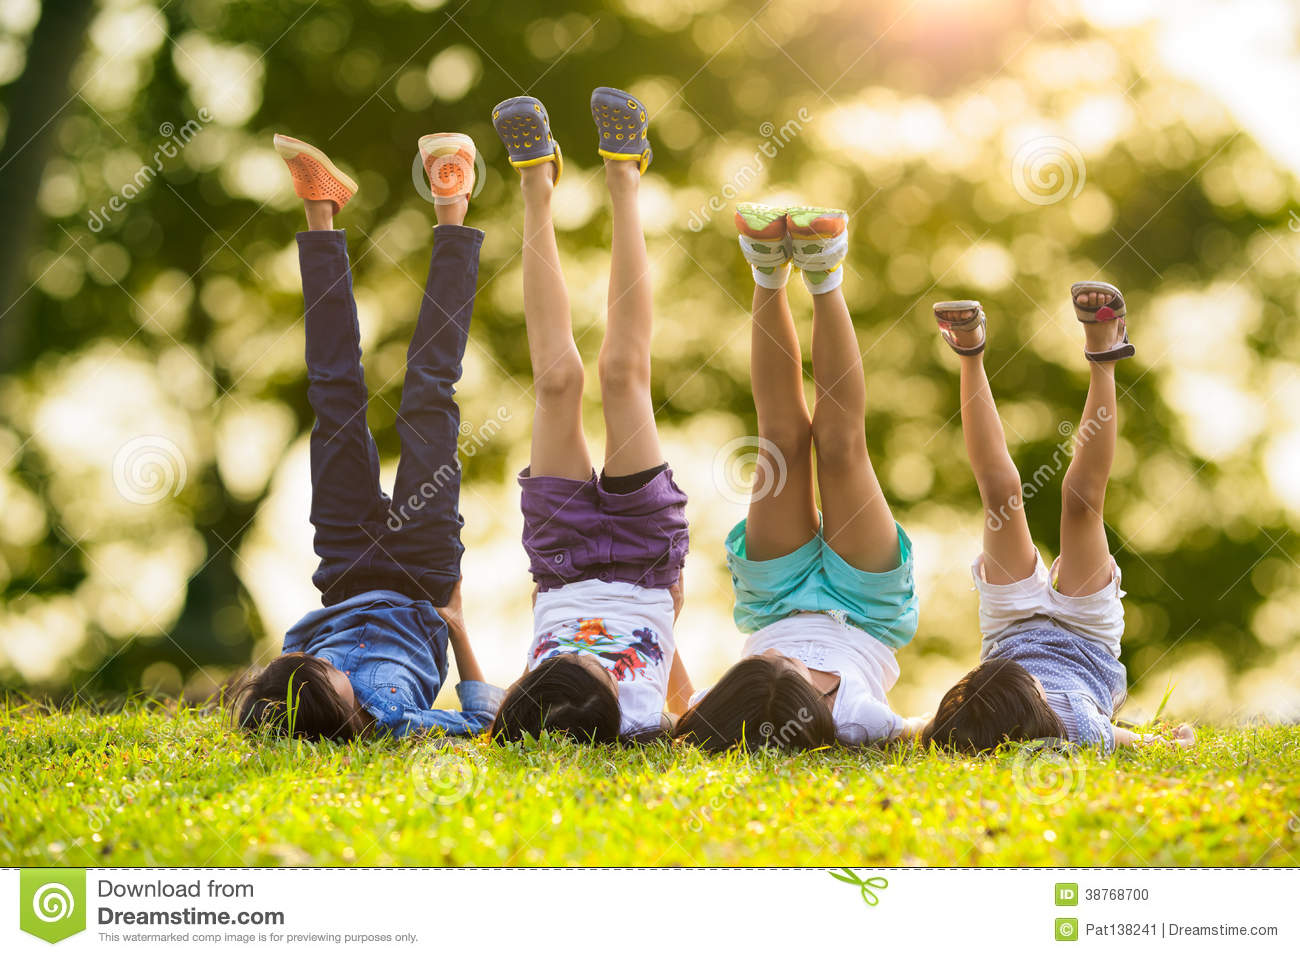 Children laying on grass